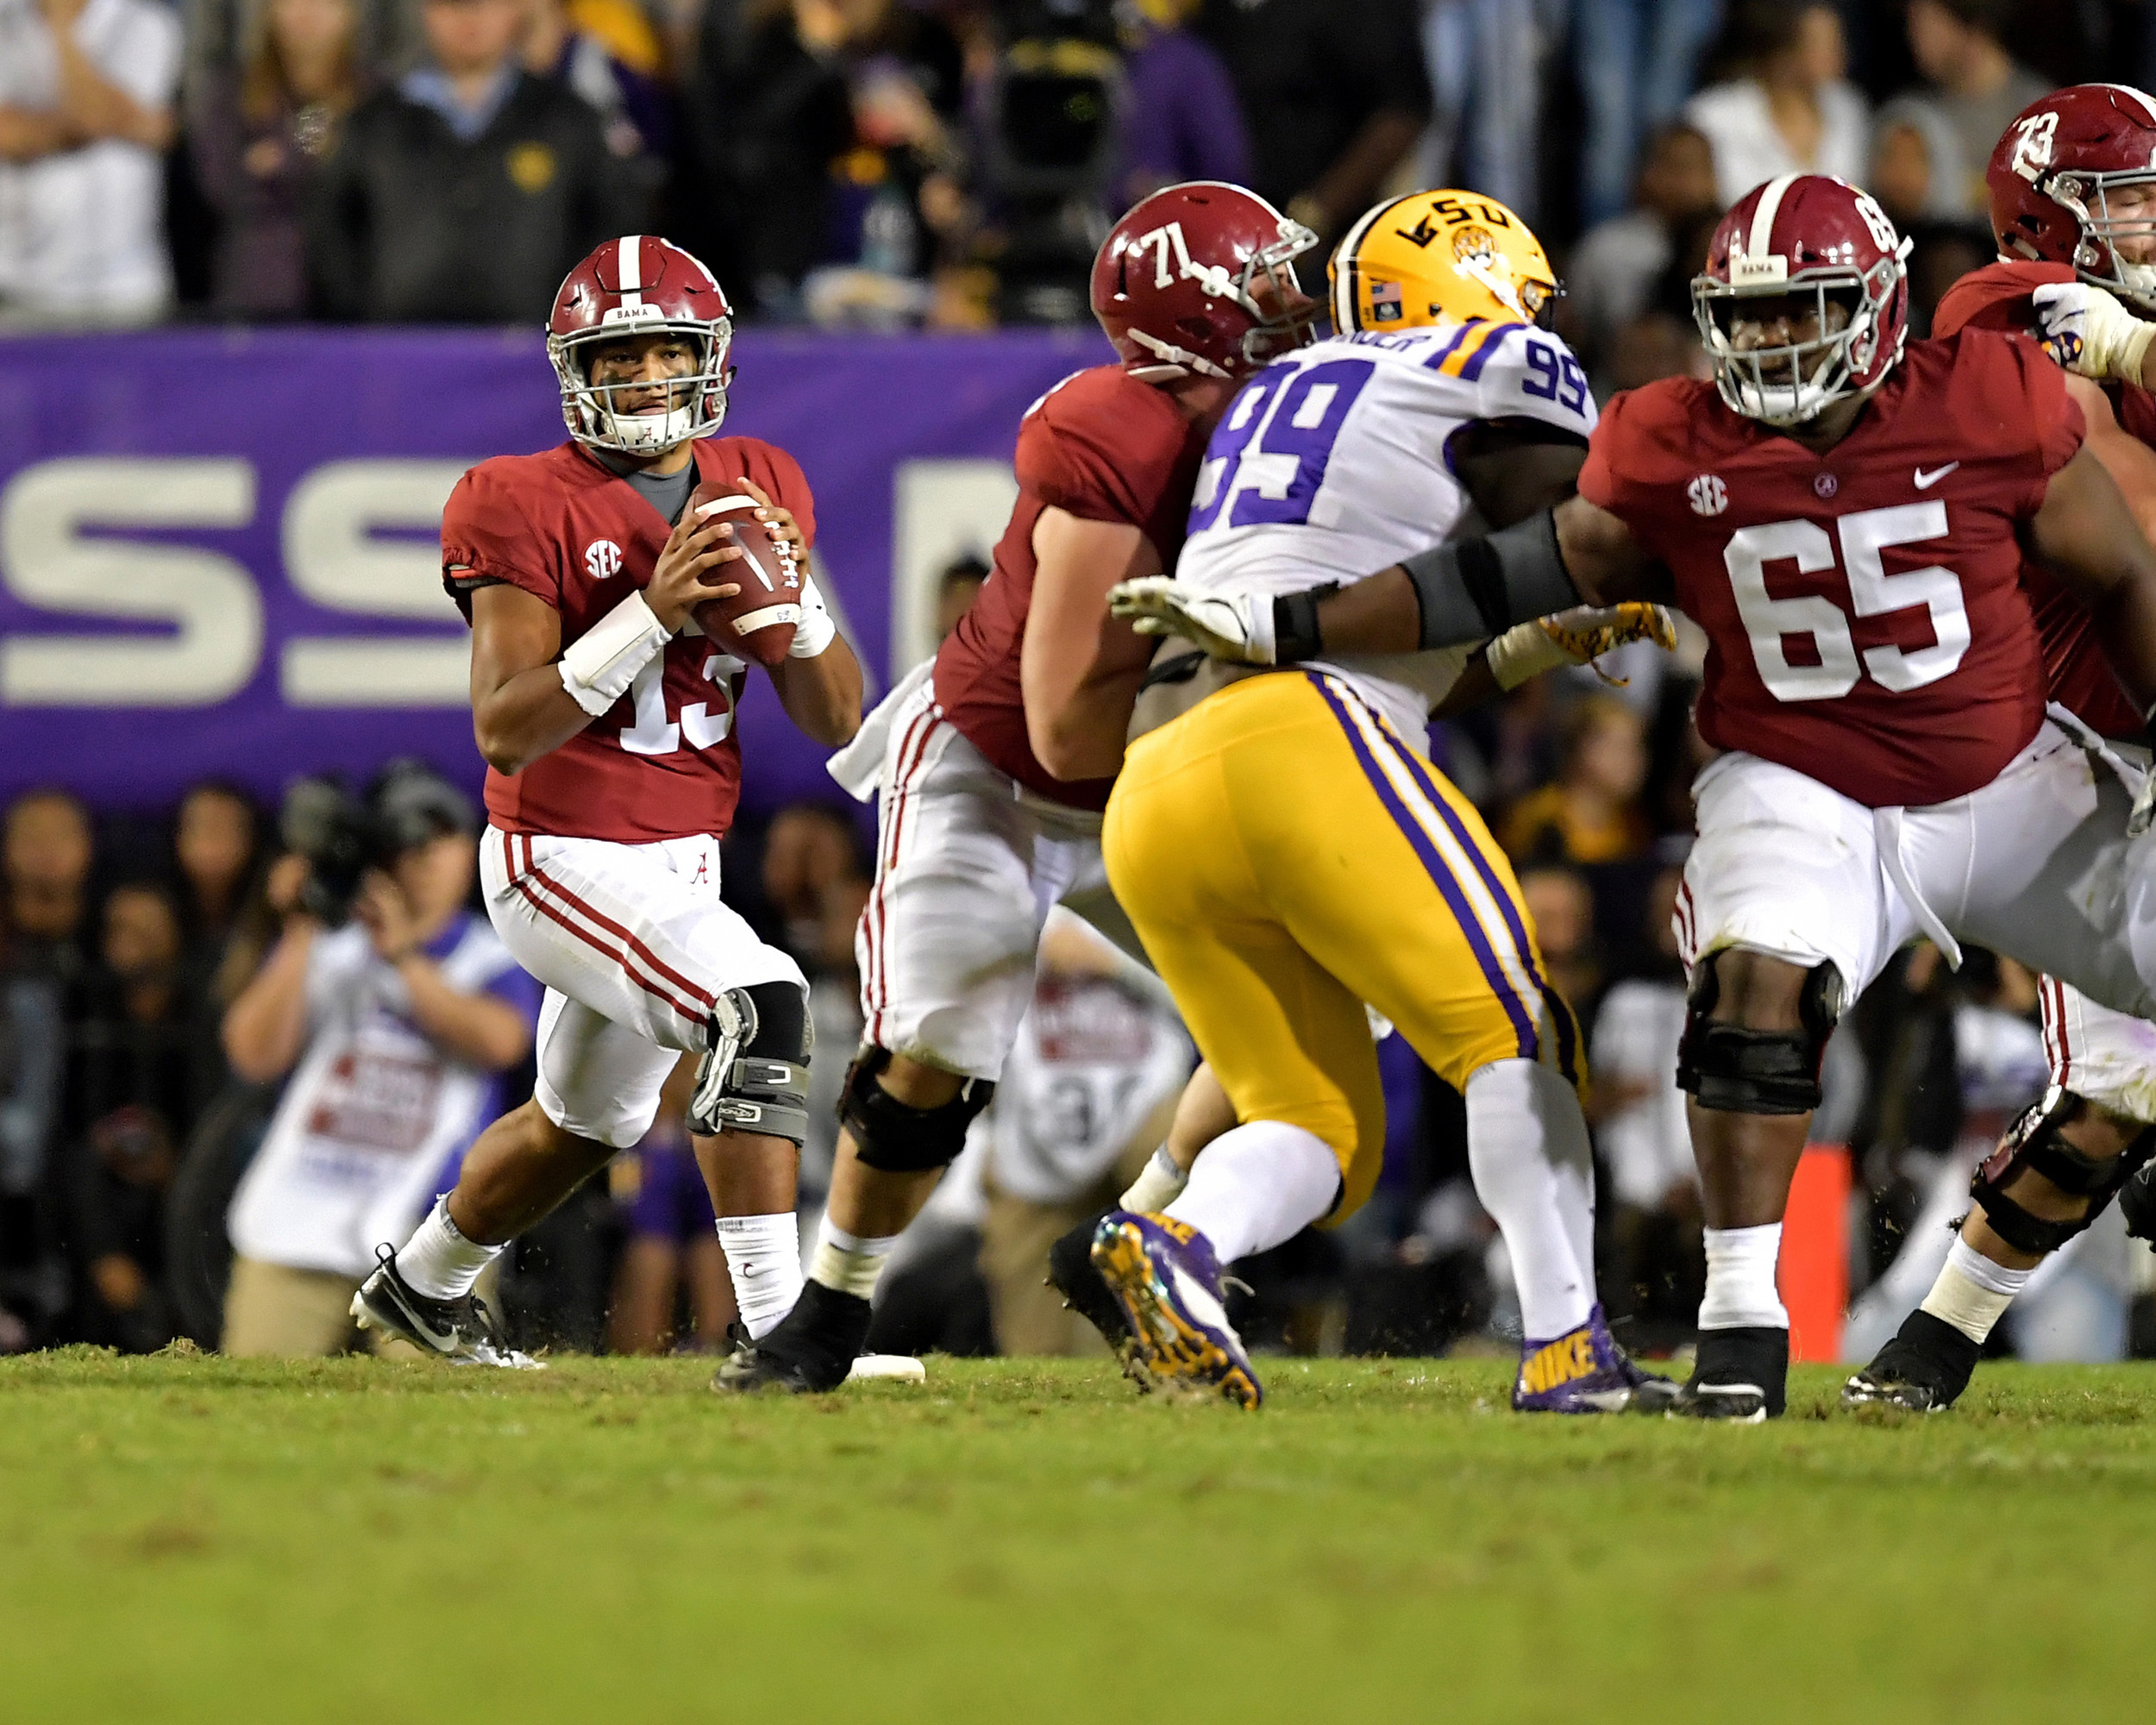 From the second half of an NCAA football game between the Alabama Crimson Tide and the LSU Tigers Saturday, November 3, 2018, at Tiger Stadium in Baton Rouge, La. Alabama wins 29-0. (Photo by Lee Walls)